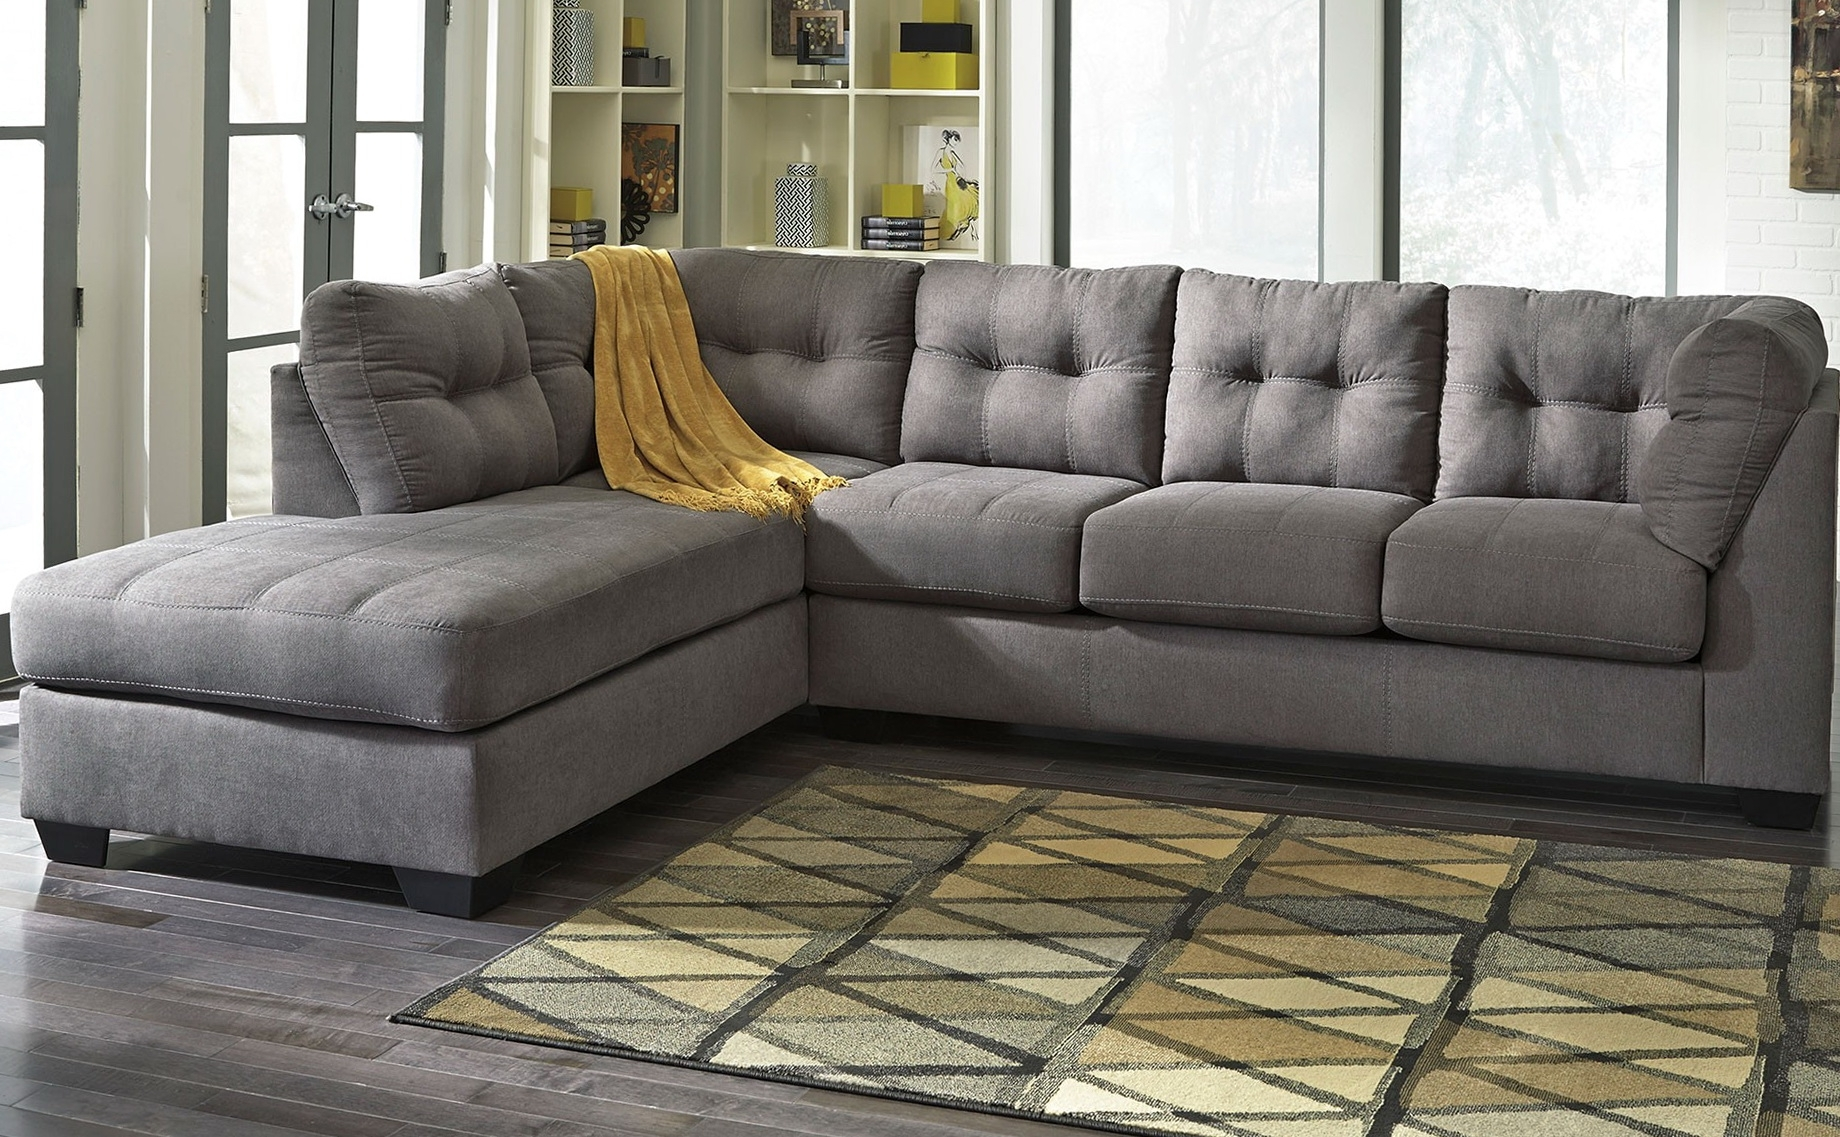 Well Known Sectional Sofas With Chaise With Sofa ~ Awesome Grey Sectional Sofa Perfect Grey Sectional Sofa (View 15 of 15)